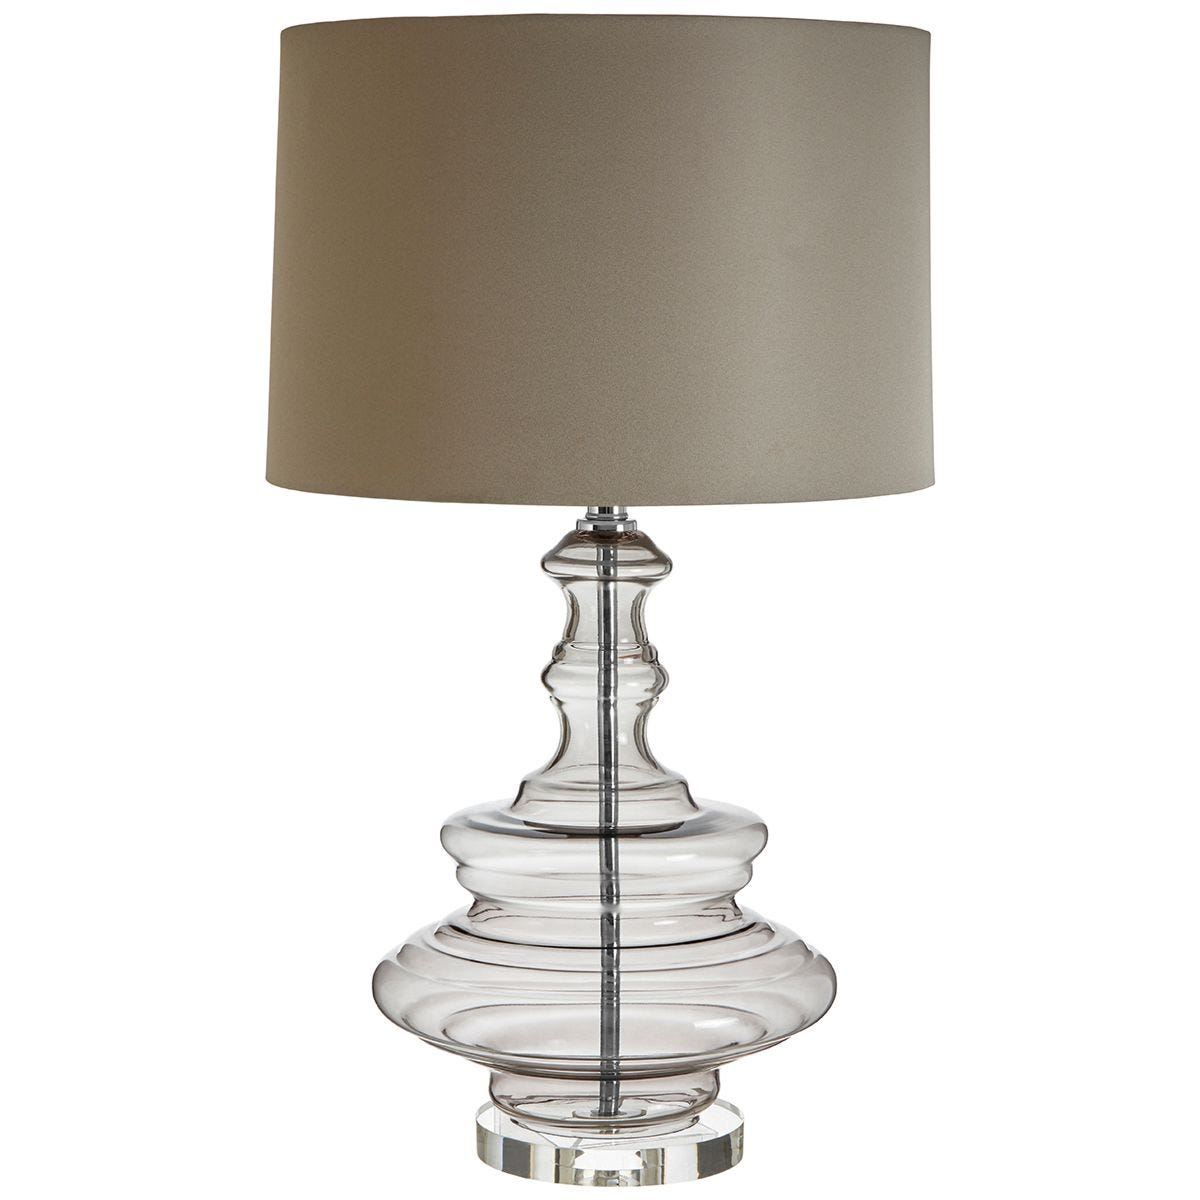 Premier Housewares Urania Table Lamp with Grey Shade